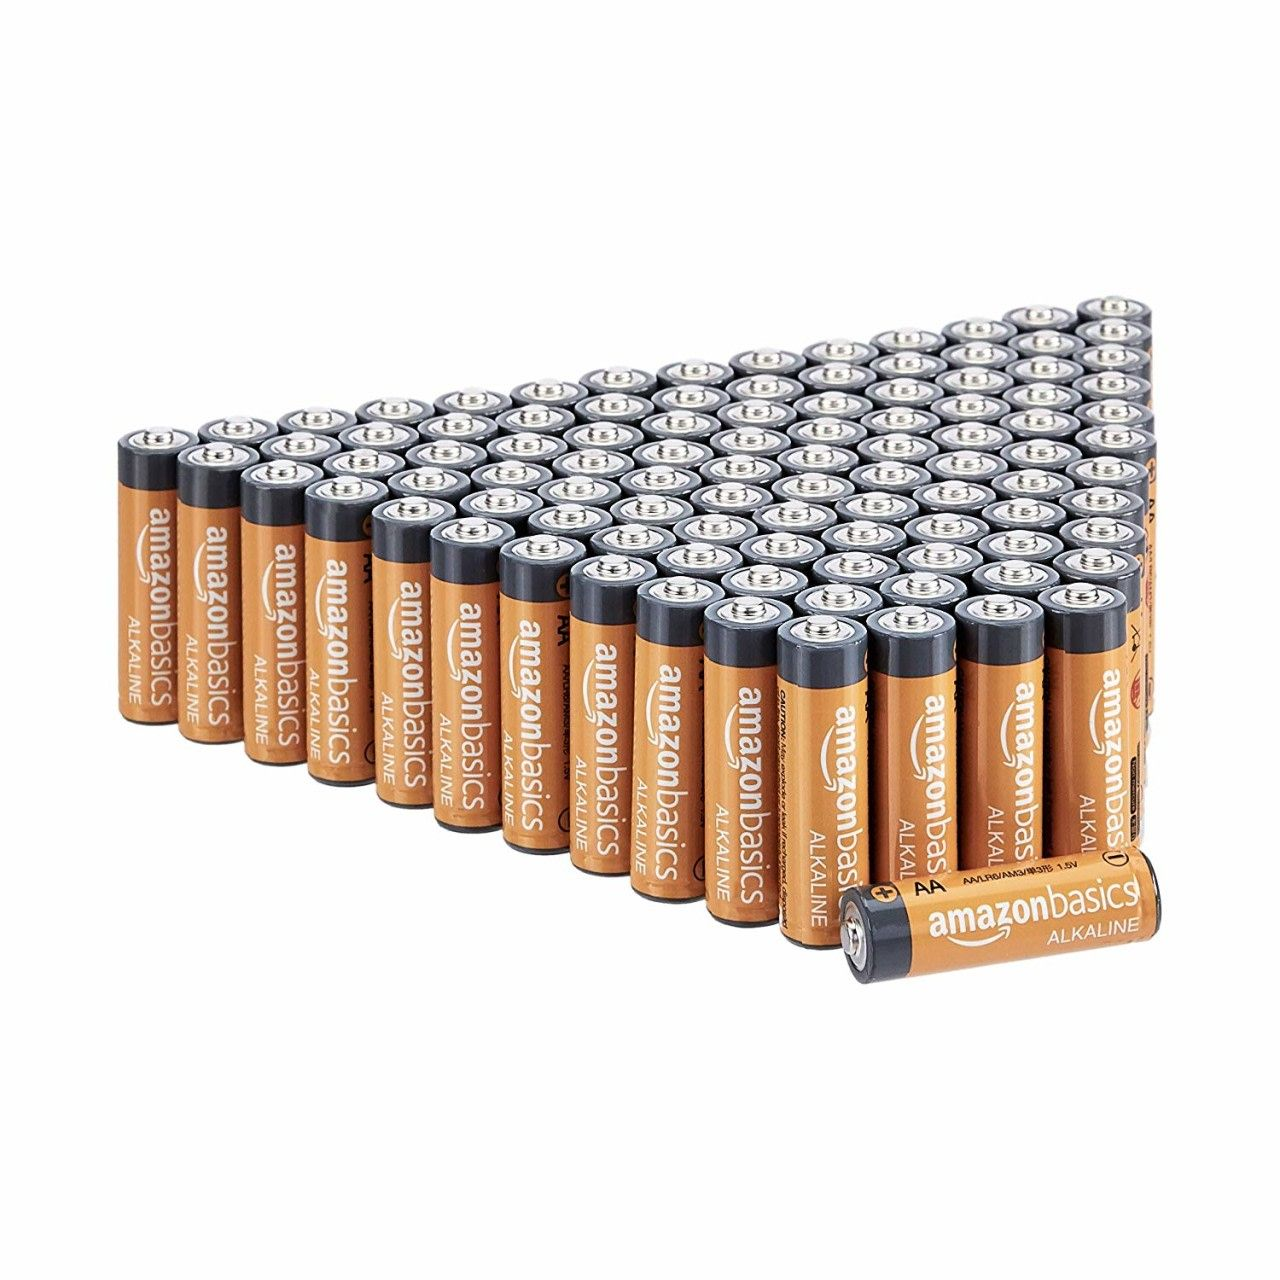 Amazonbasics Aa Performance Alkaline Batteries 100 Count Only 20 39 Become A Coupon Queen Alkaline Battery Rechargeable Batteries Batteries